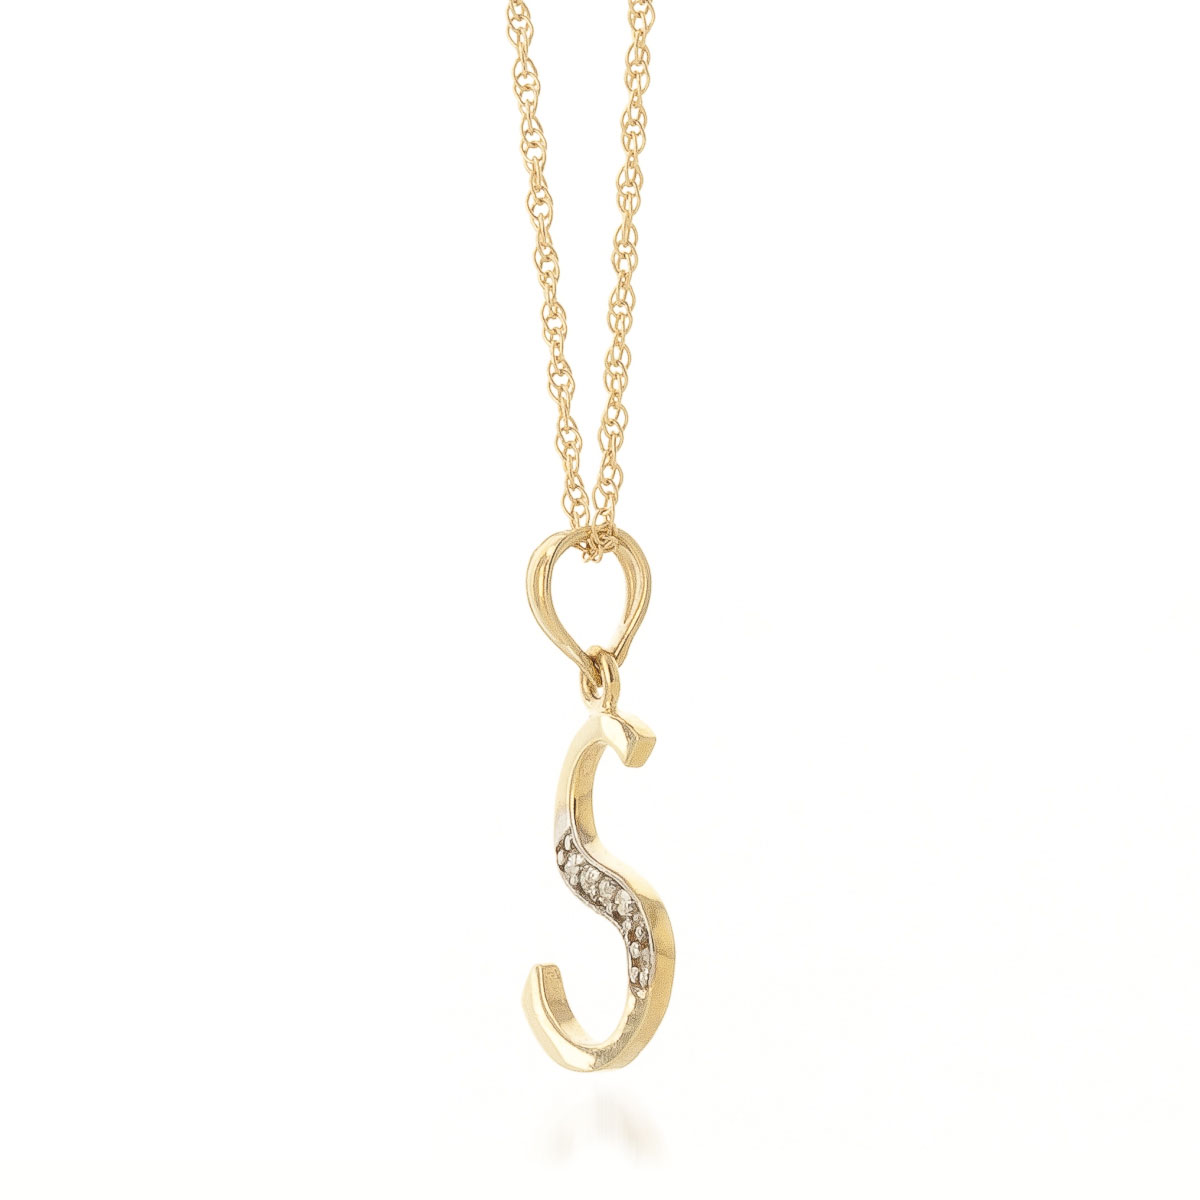 gold letter necklace necklaces kingice s initial pendant products